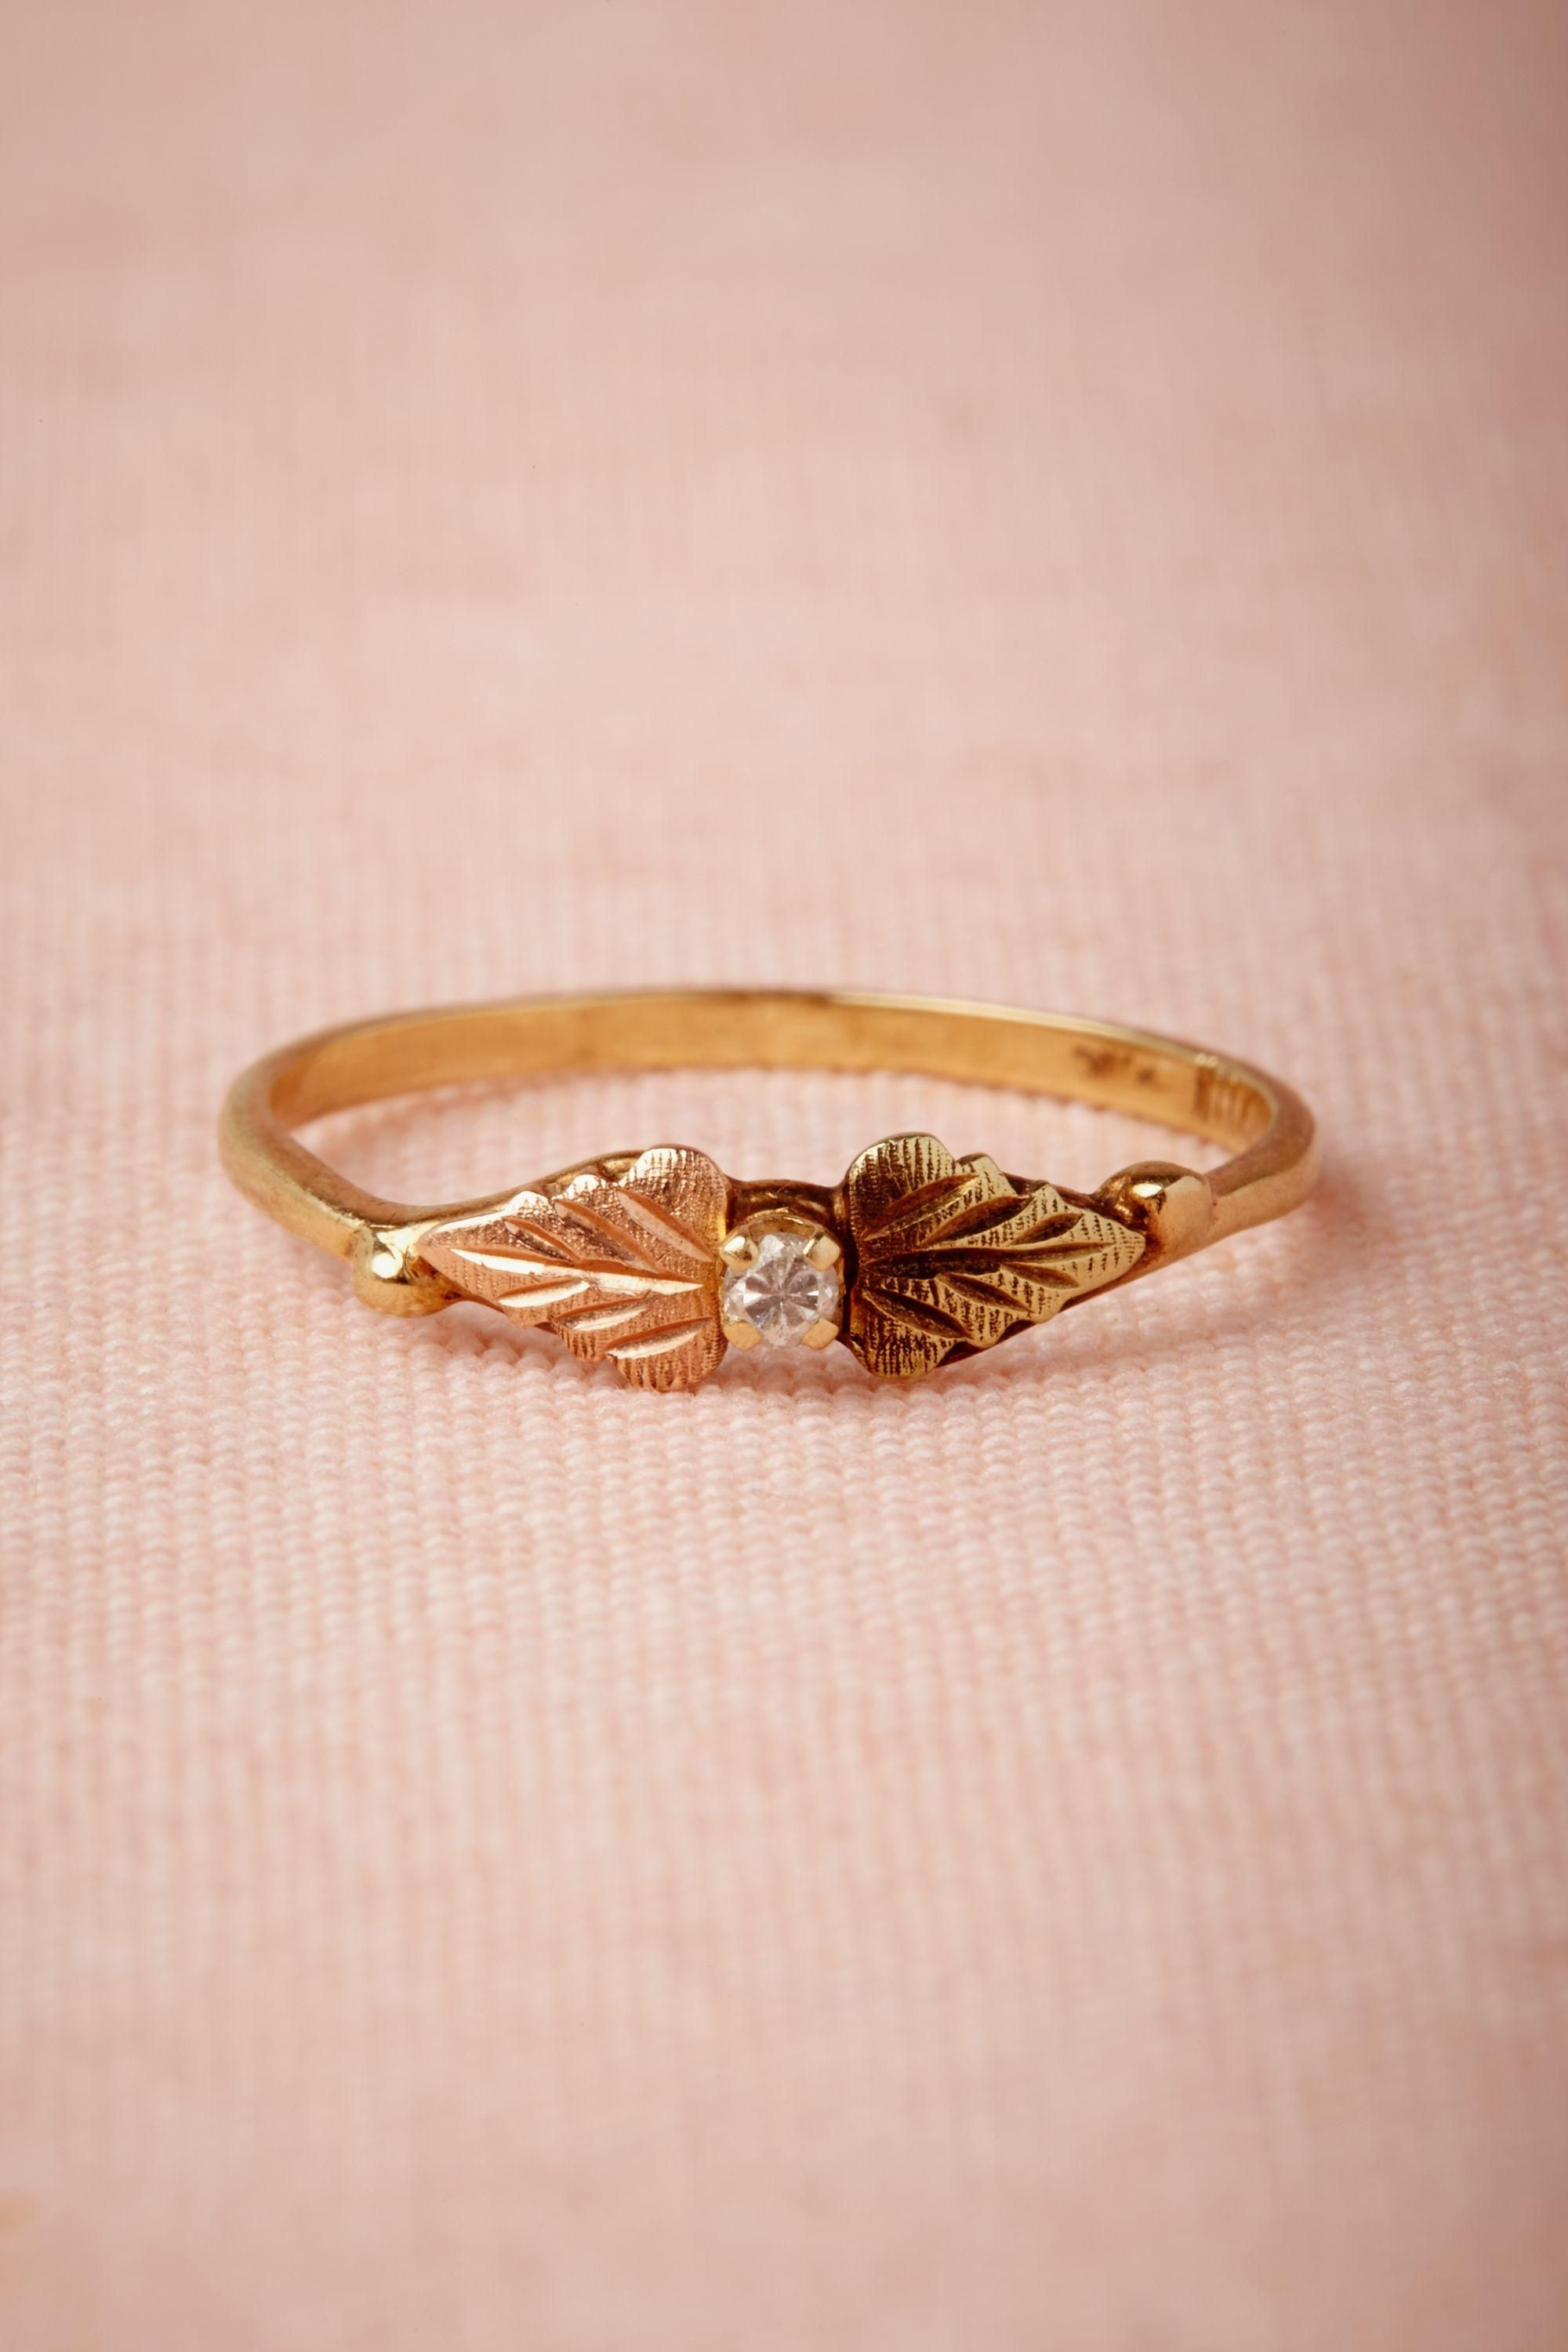 cute ring | Clothes/shoes/bags/etc. | Pinterest | Ring, Gold rings ...